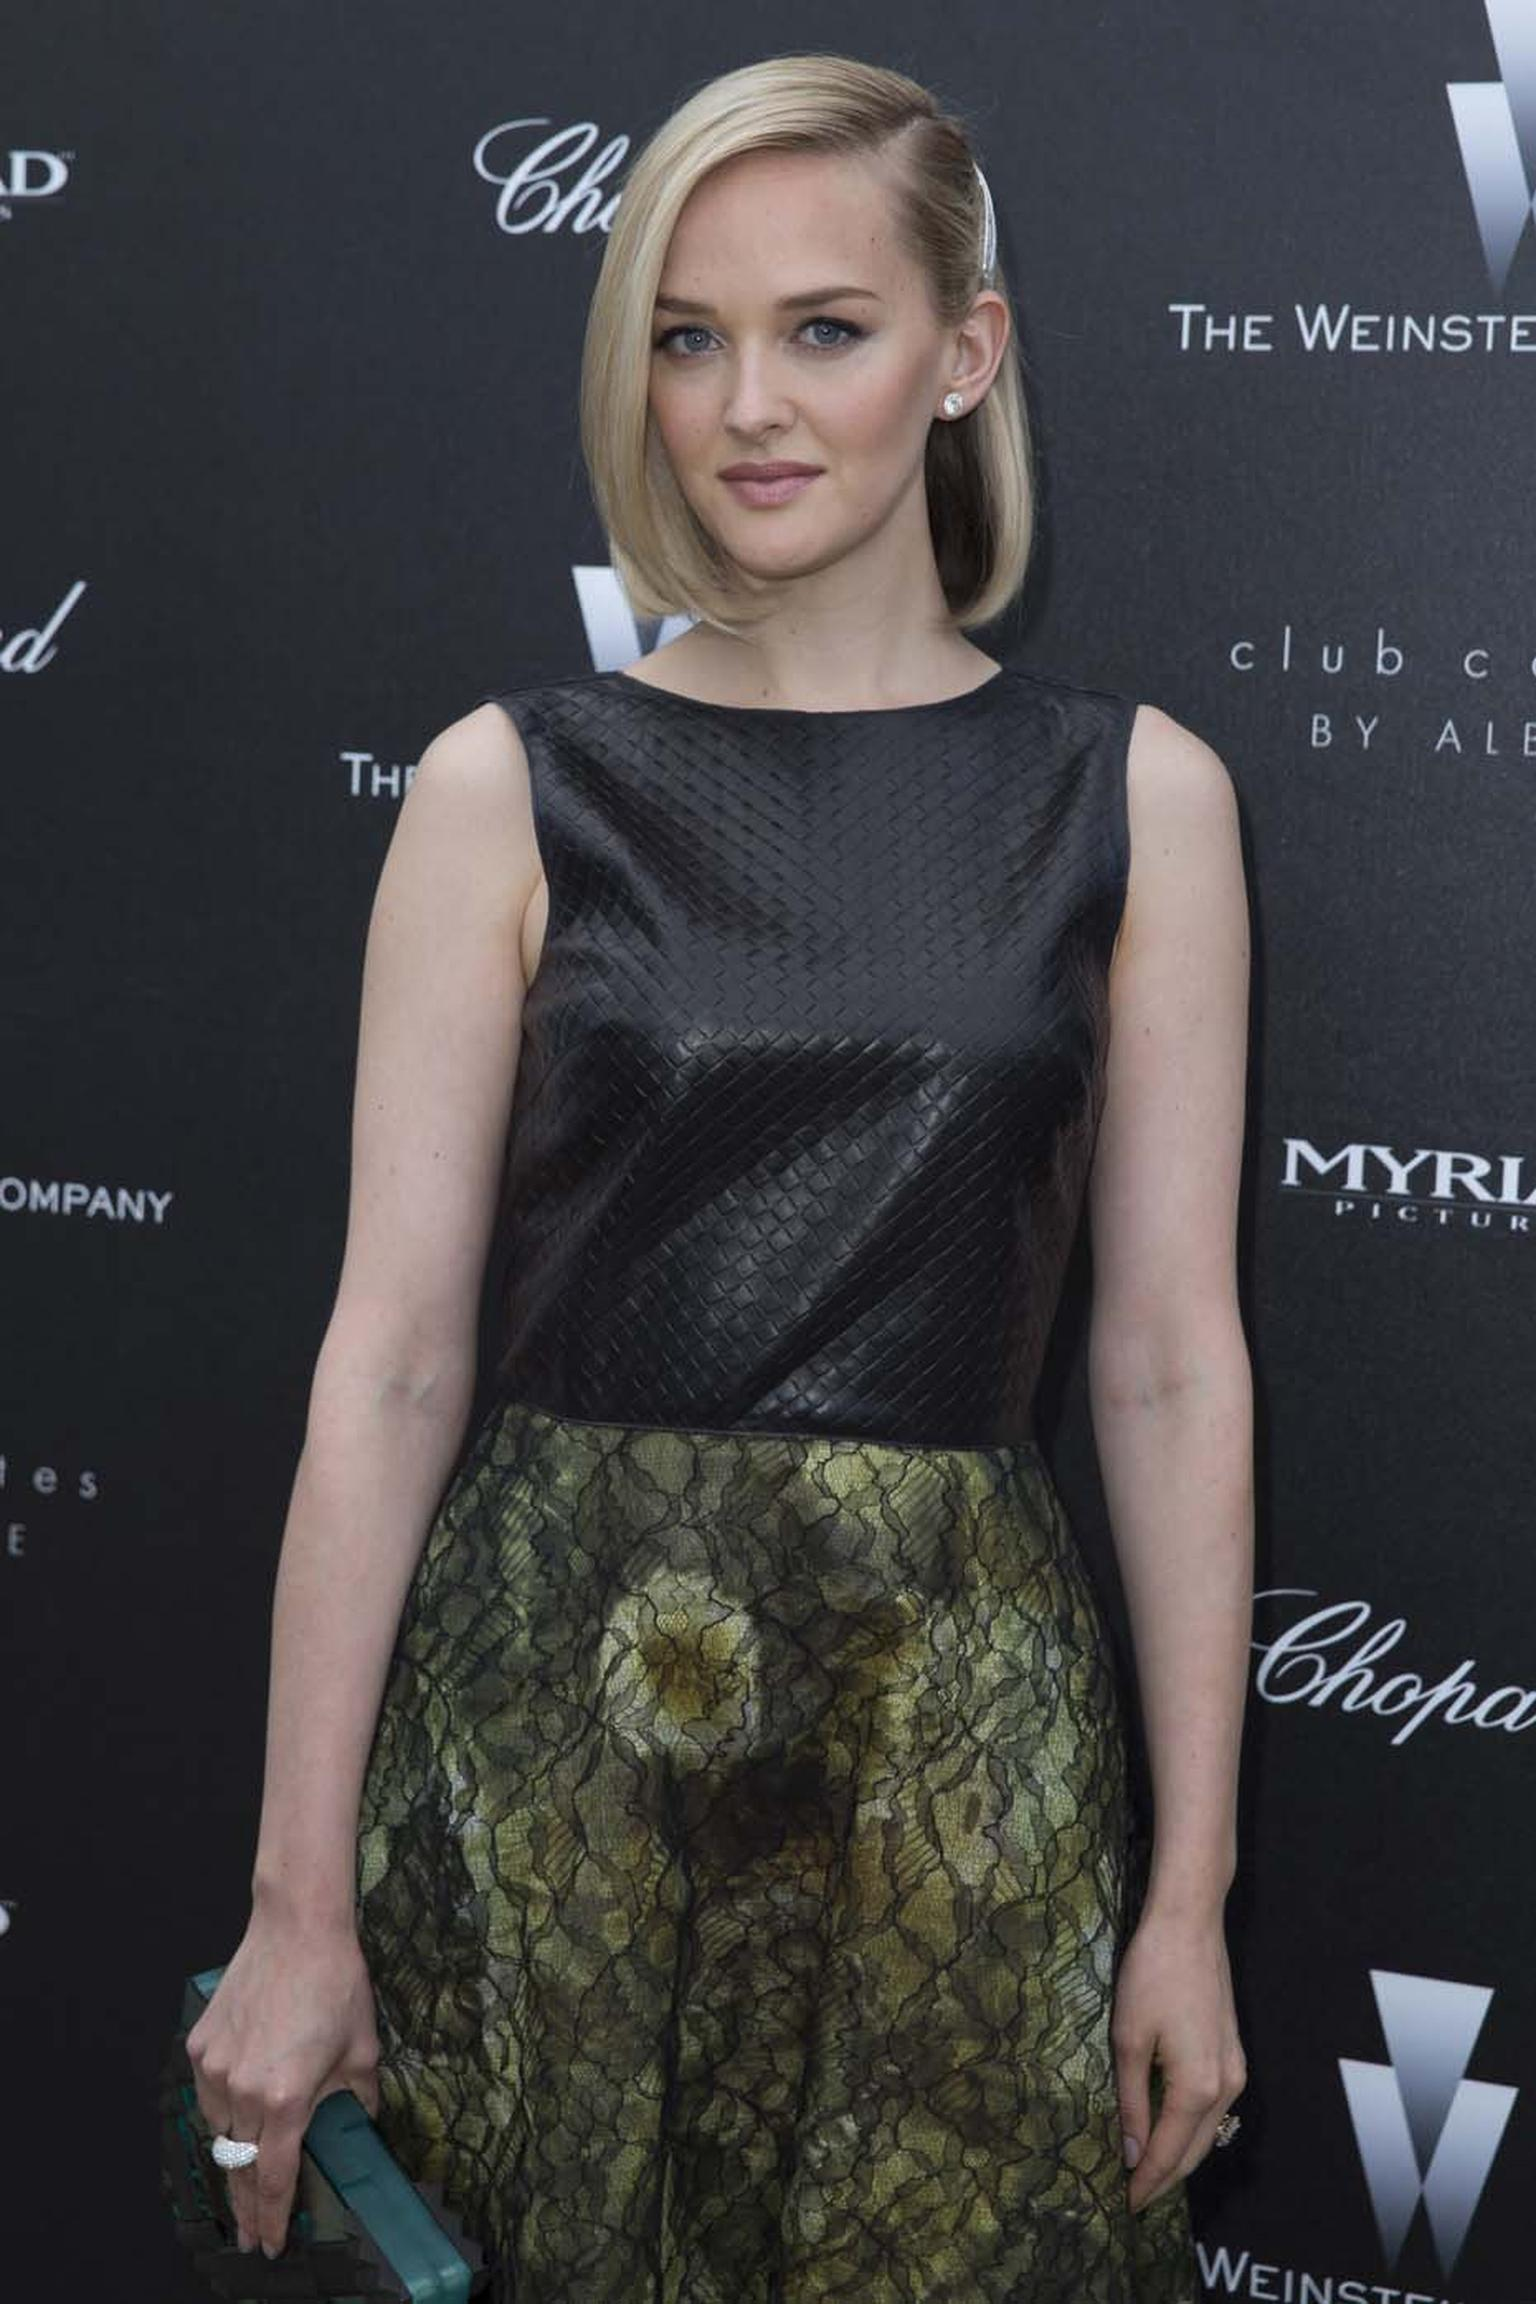 Jess Weixler at the Weinstein party wearing Chopard's brilliant-cut diamond earrings and ring.